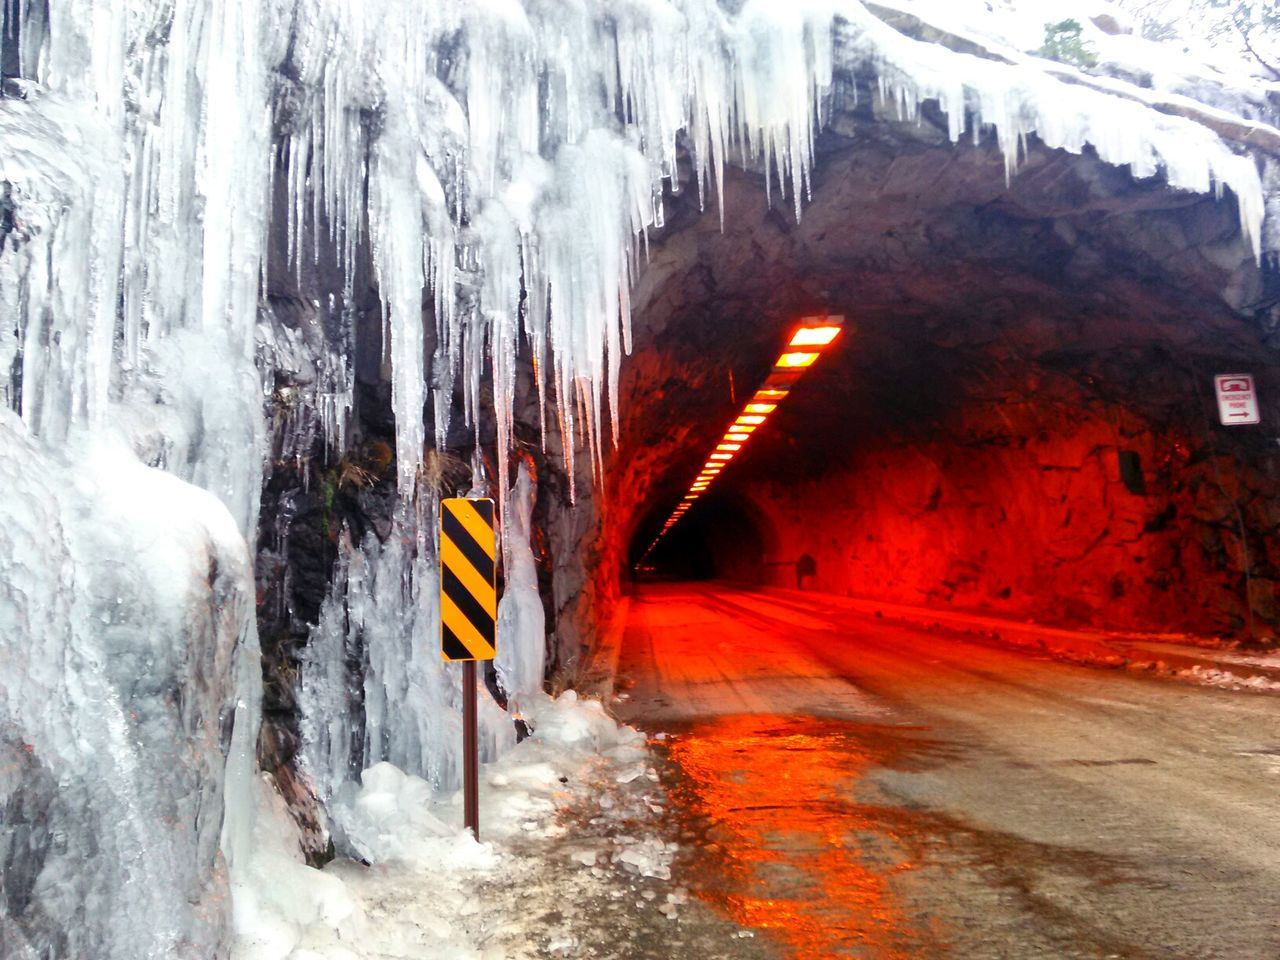 Yosemitenationalpark Snow ❄ Icicles Tunnel Day No People Outdoors Color